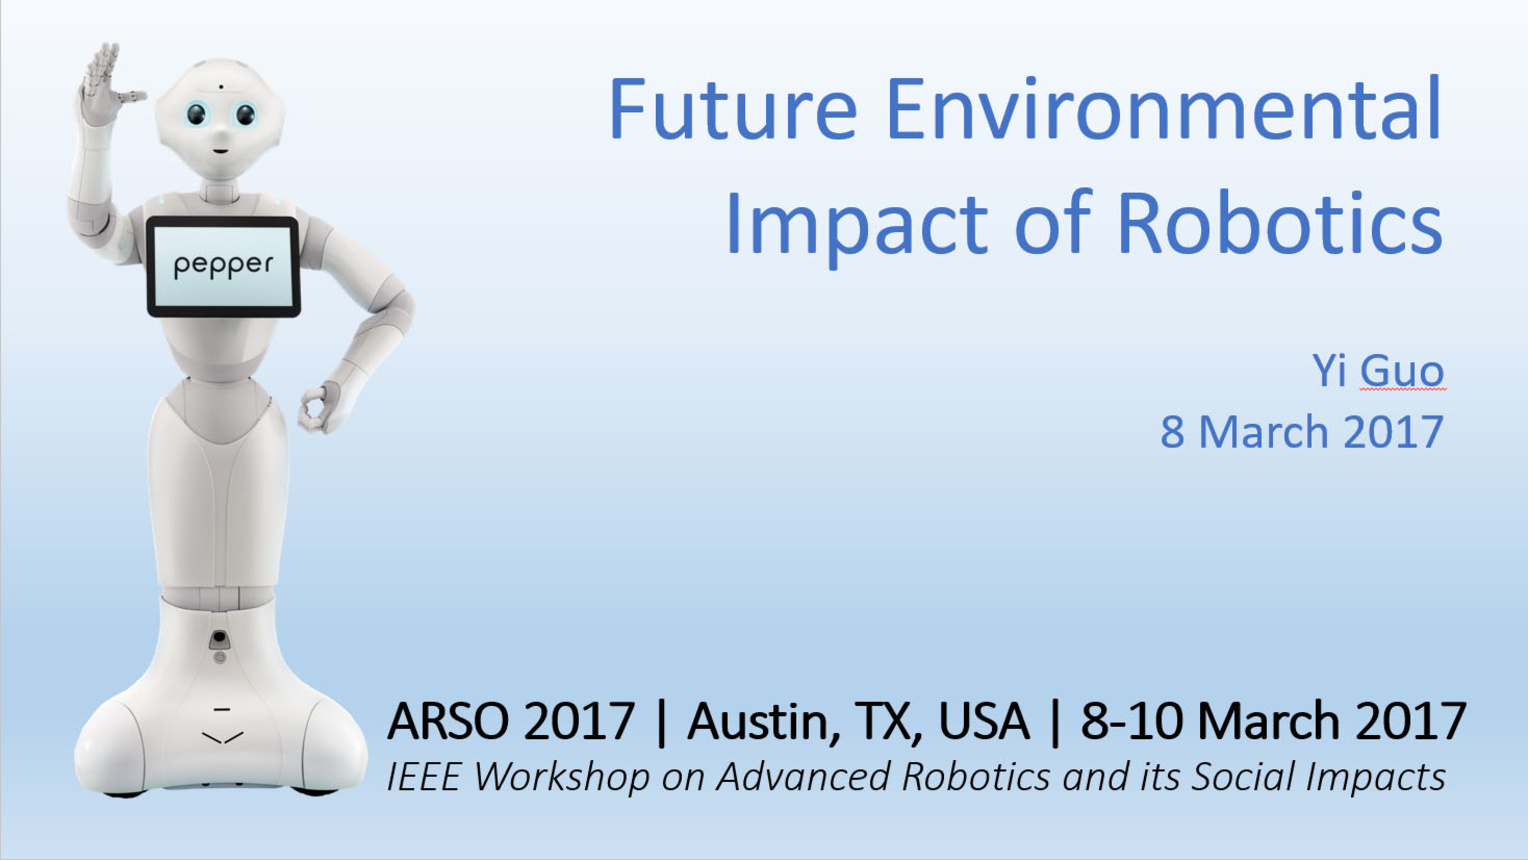 Future Environmental Impacts of Robotics